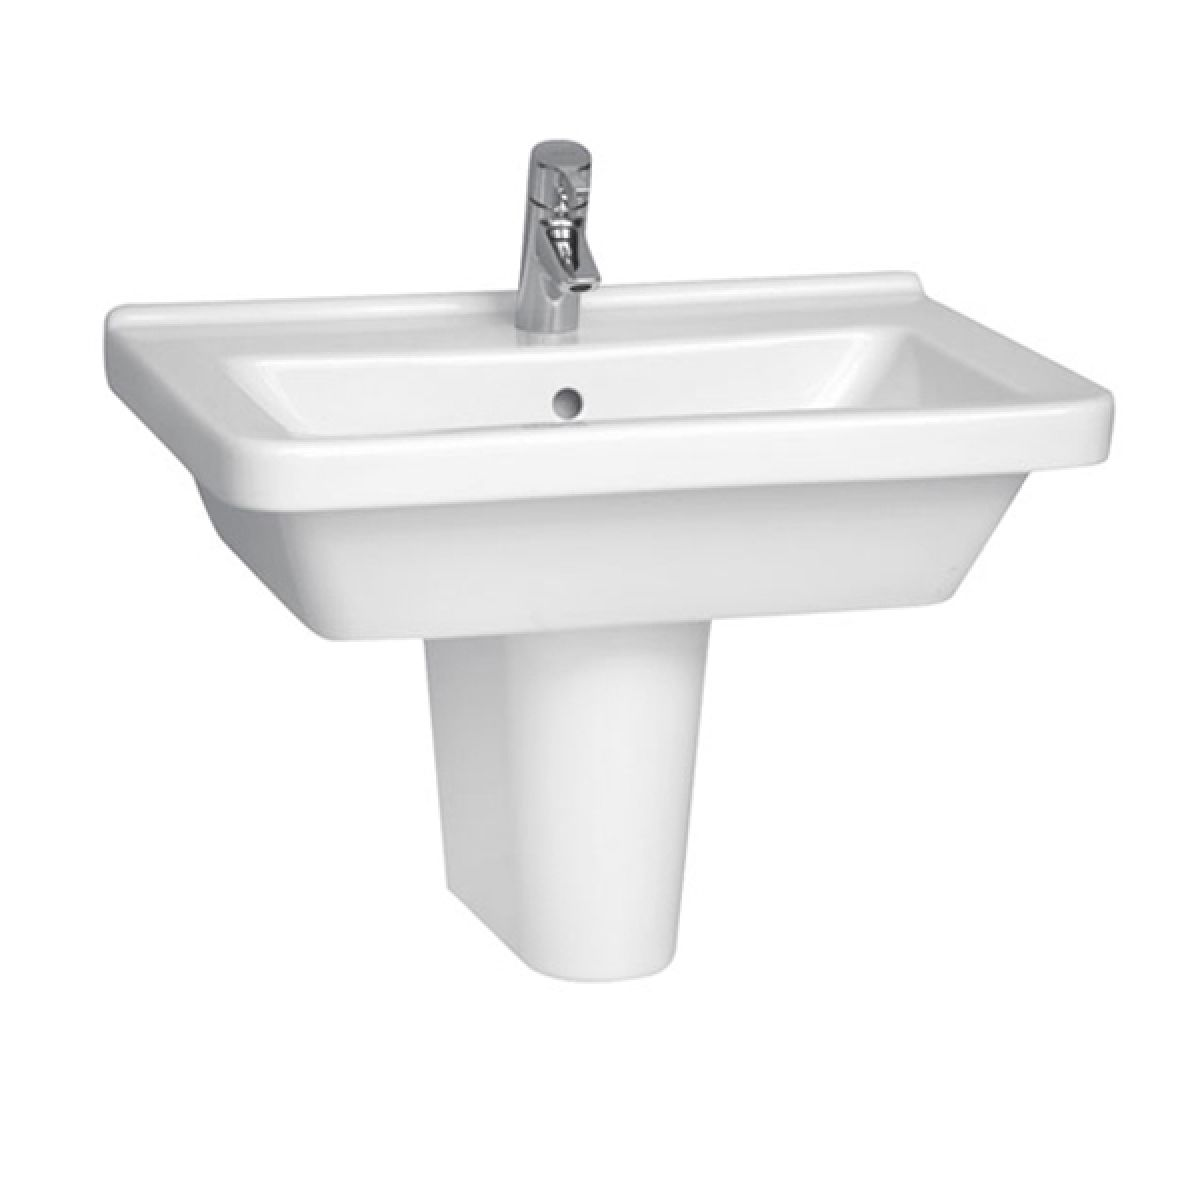 Vitra S50 1 Tap Hole Square Basin with Semi Pedestal 650mm